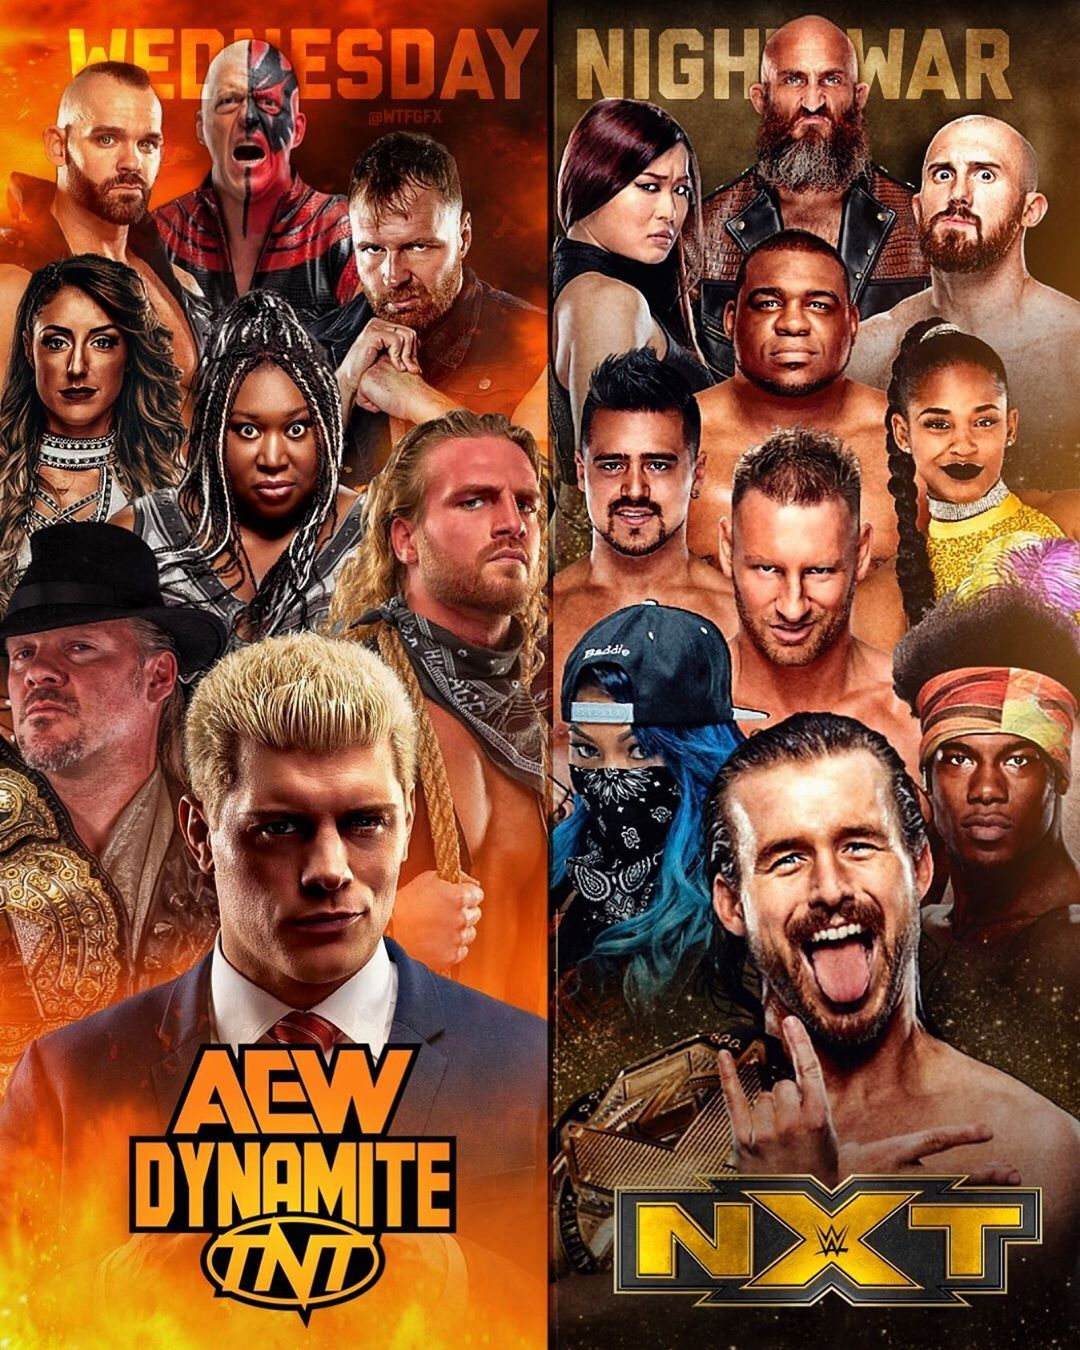 Wtfgfx On Instagram The Wednesday Night War Is Almost Upon Us Aew Vs Nxt I M Ready For Both Wrestling Posters Wrestling Wwe Wrestling Superstars